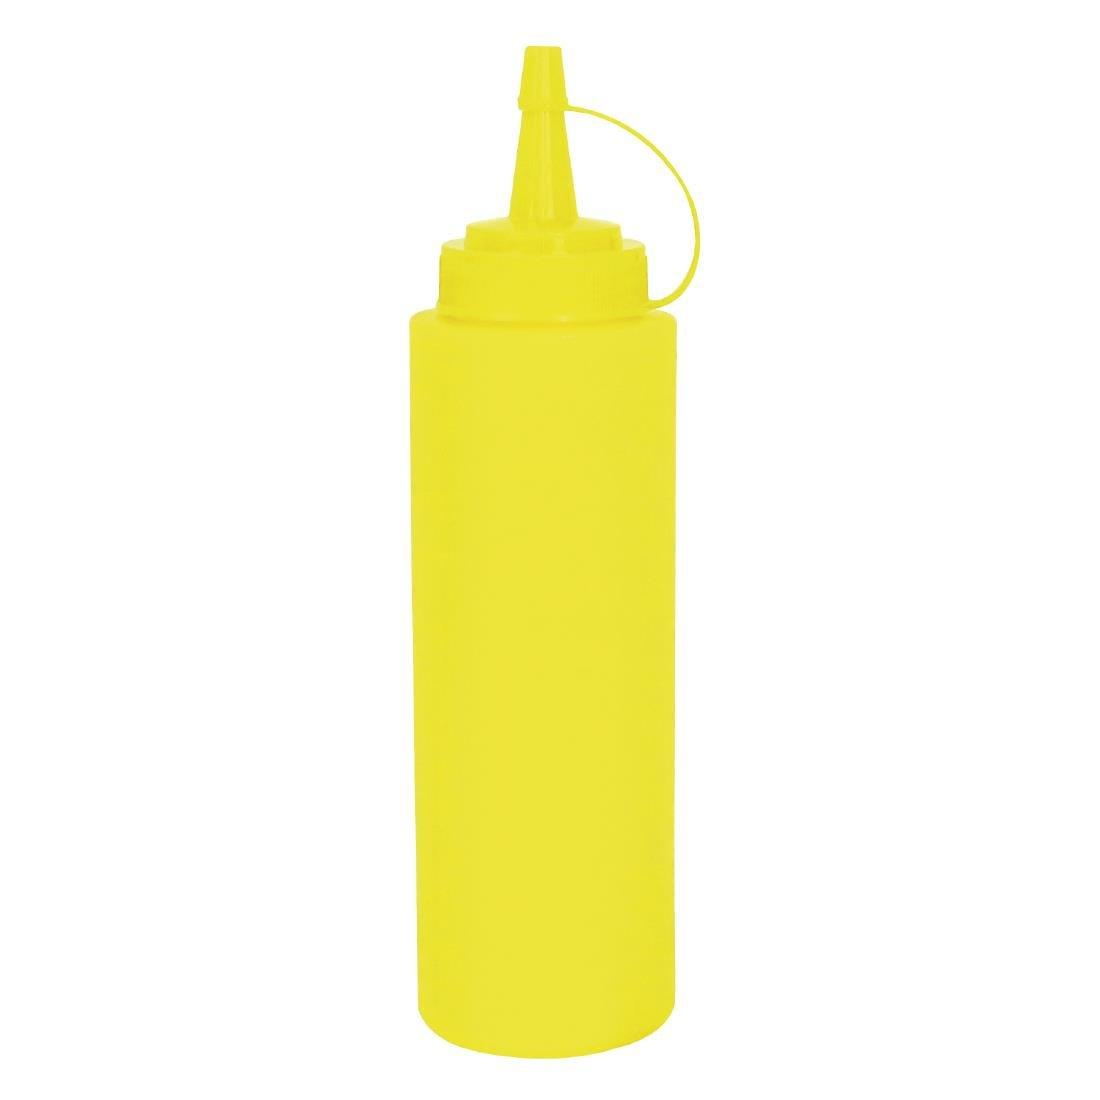 W834 - Yellow Squeeze Sauce Bottle